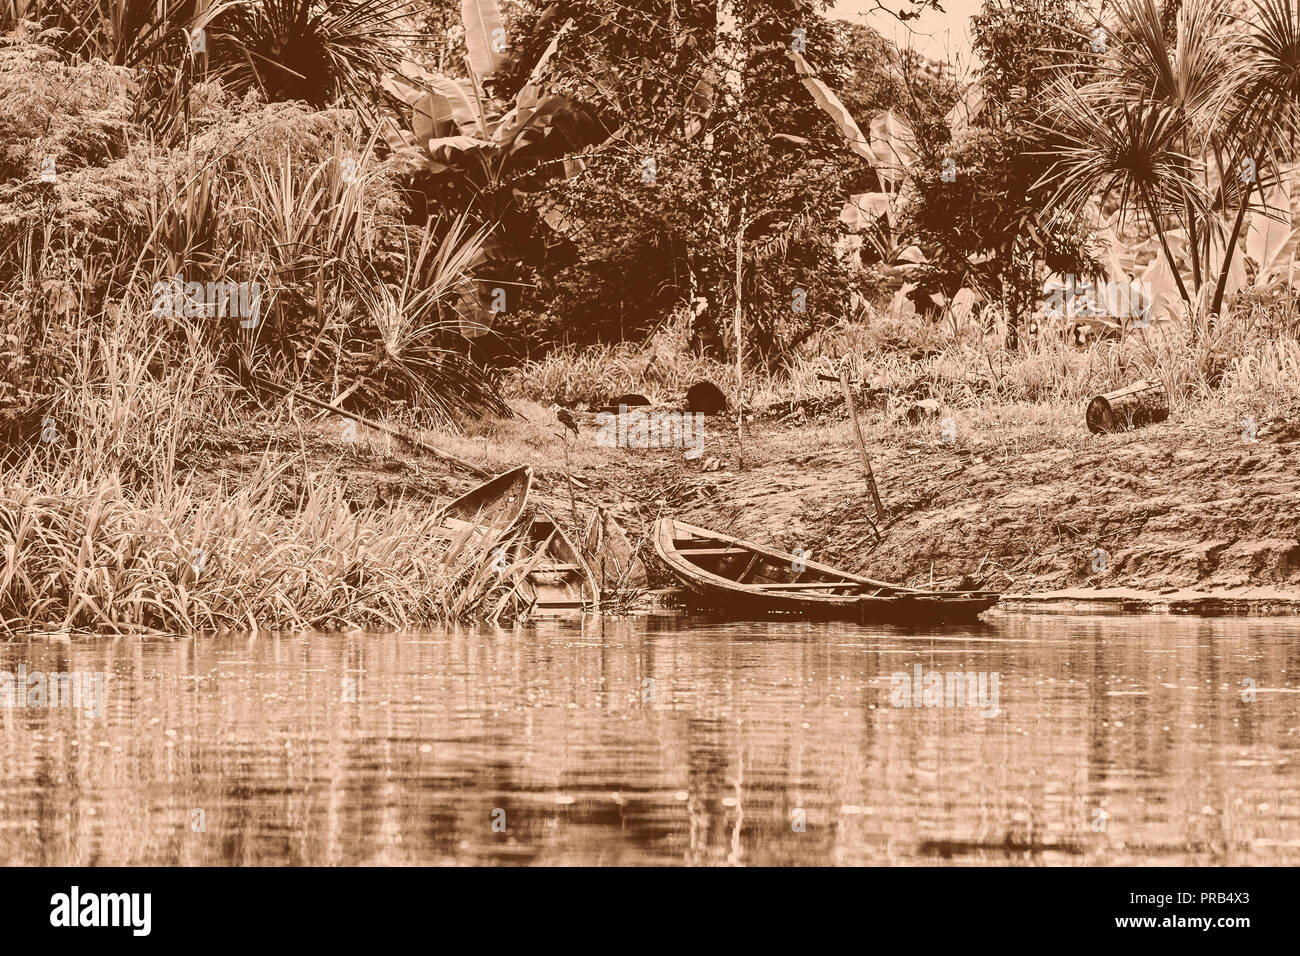 Traditional carved wooden canoe lying on the banks of the Amazon river in Peru - Stock Image